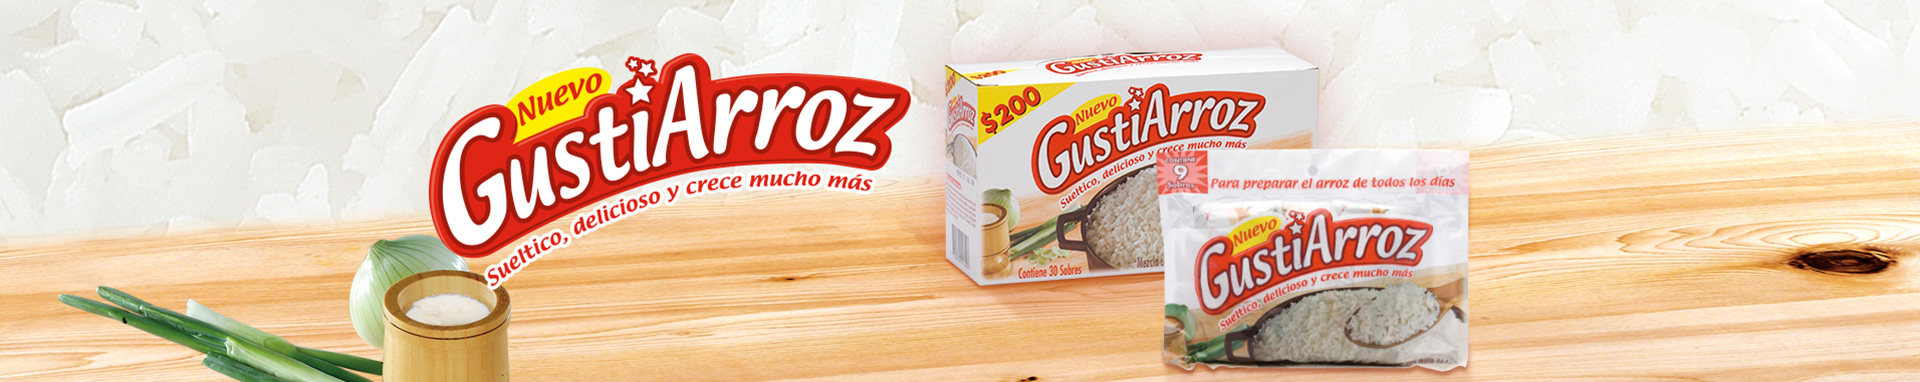 Banners_gustiarroz